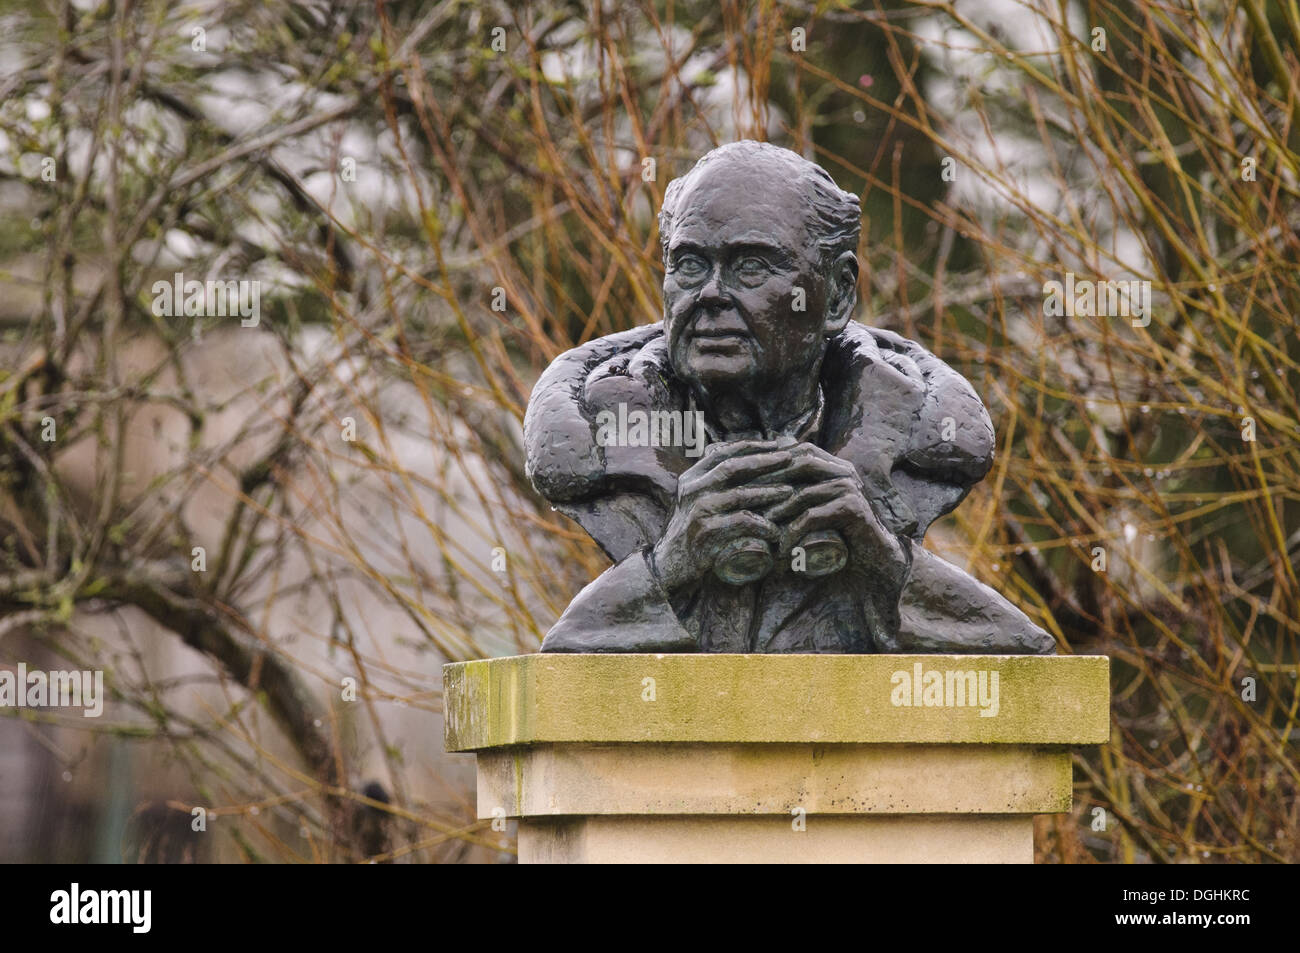 Bust of Sir Peter Scott wet from rain naturalist and founder of Wildfowl and Wetlands Trust Slimbridge Gloucestershire Stock Photo